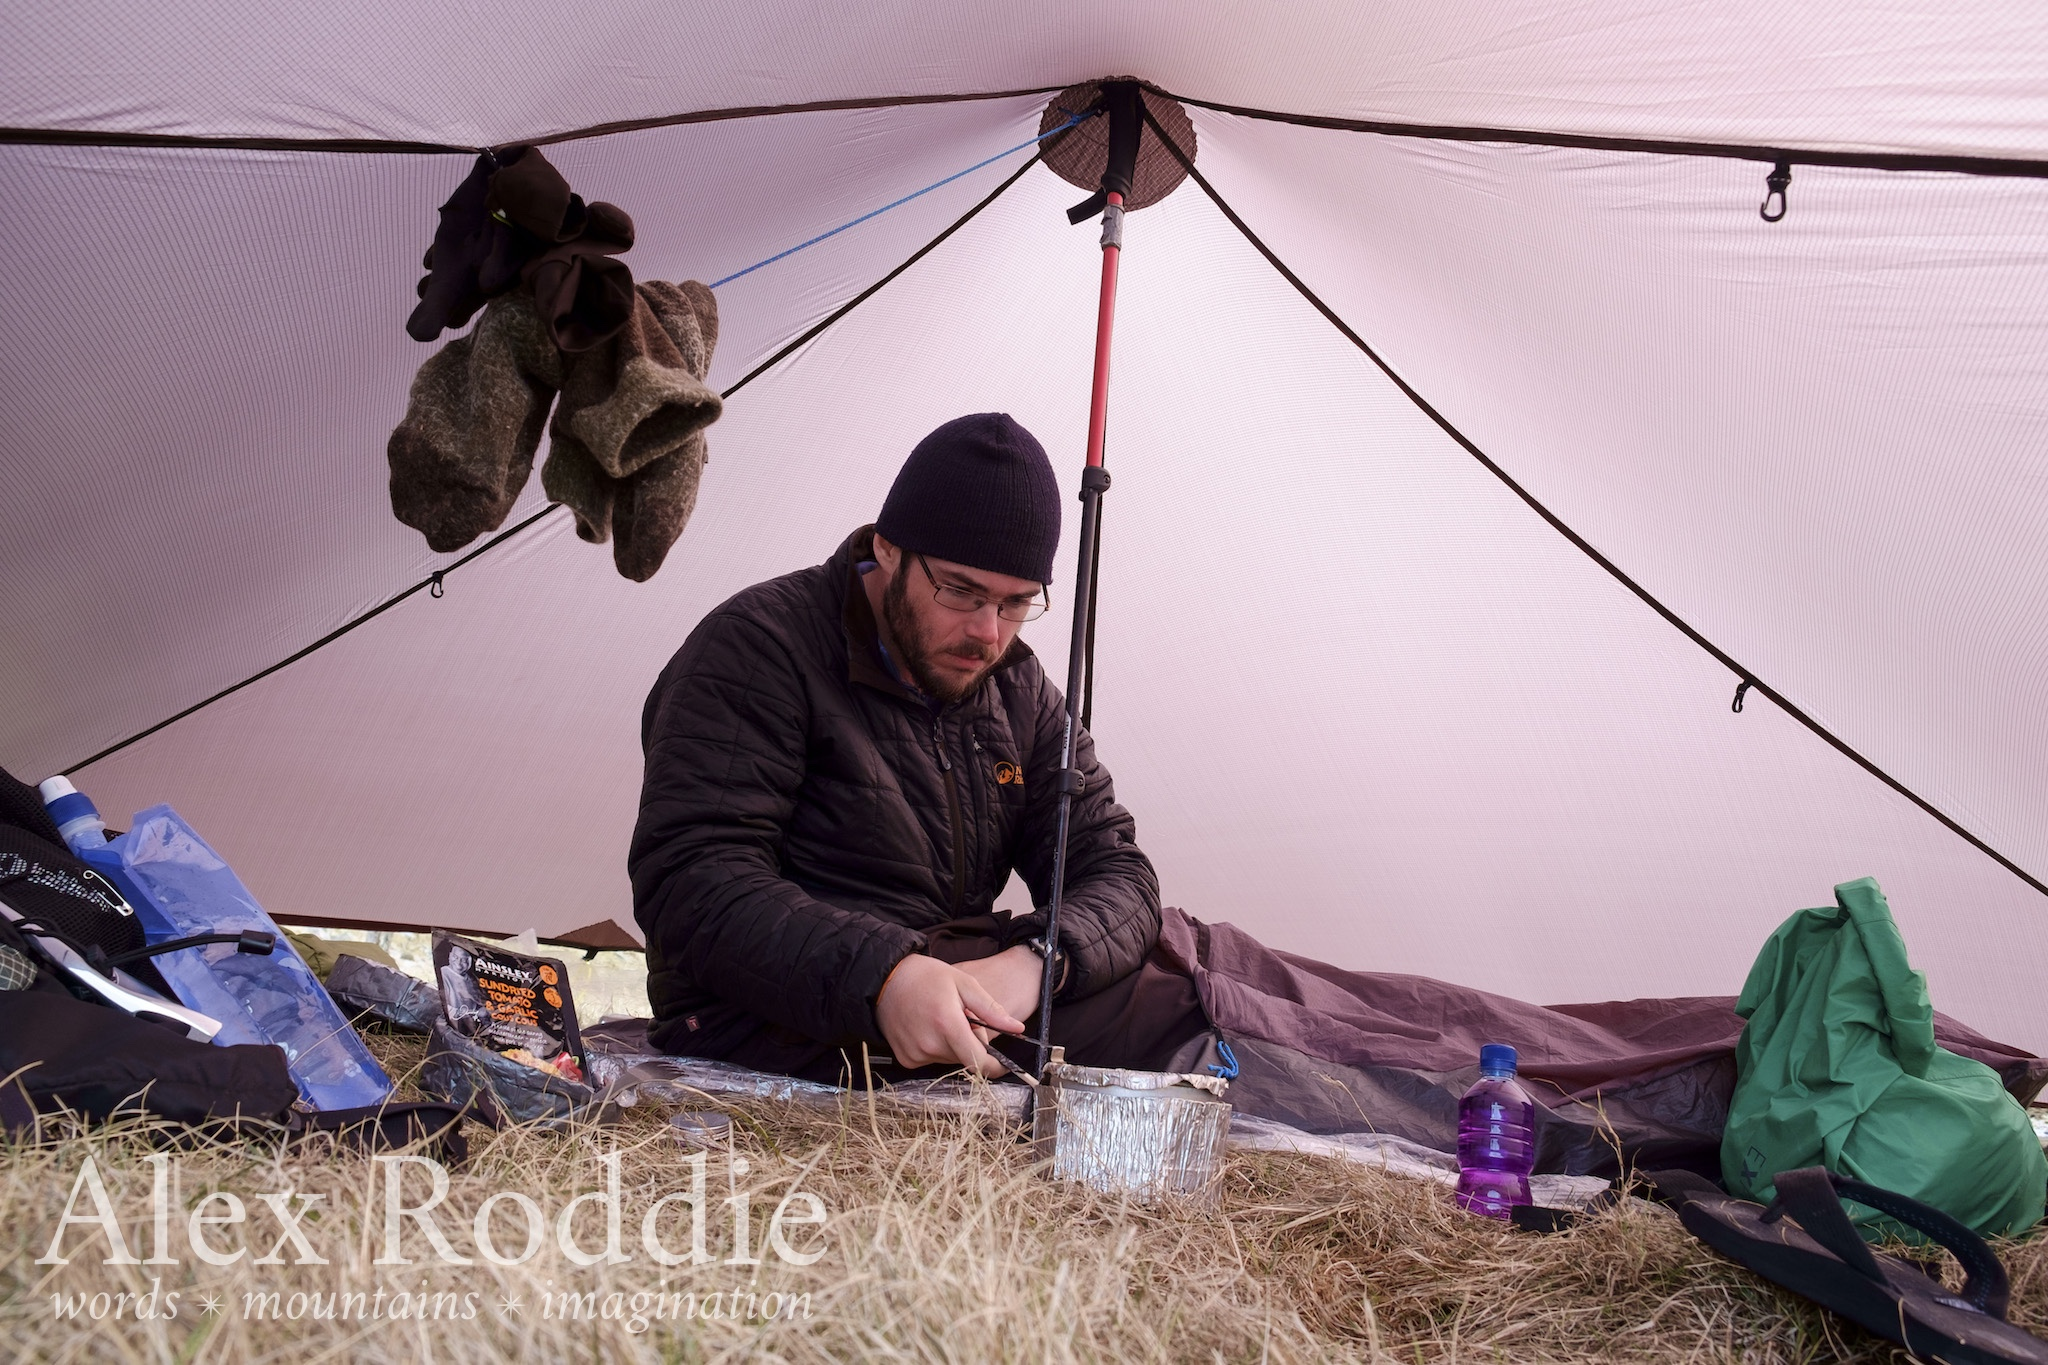 Life without an inner tent is pretty sweet... until the midges come out